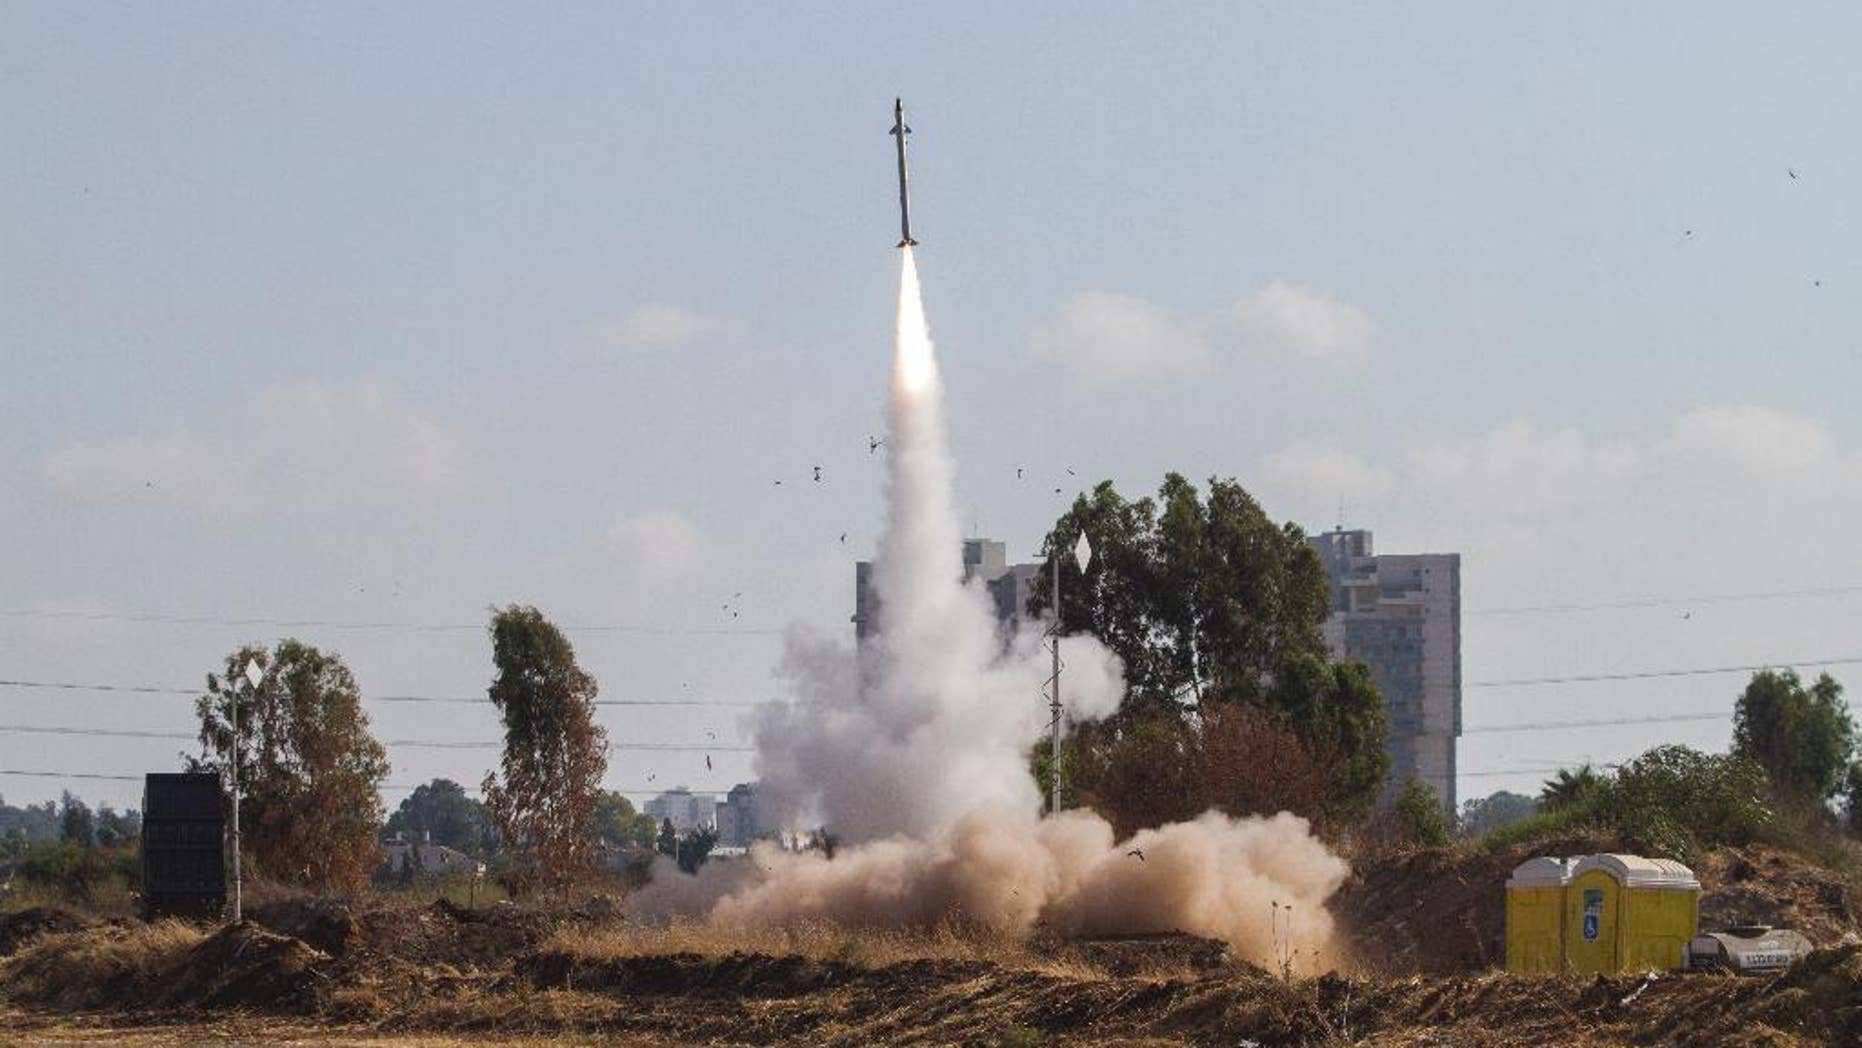 """FILE - In this July 9, 2014 file photo, an Iron Dome air defense system fires to intercept a rocket from the Gaza Strip in Tel Aviv, Israel. Israel's """"Iron Dome"""" defense system has emerged as a game-changer in the current round of violence with Hamas militants in the Gaza Strip, shooting down dozens of incoming rockets and being credited with preventing numerous civilian casualties. The system is ensuring Israel's decisive technological edge that has helped it operate virtually unhindered in Gaza.  (AP Photo/Dan Balilty, File)"""